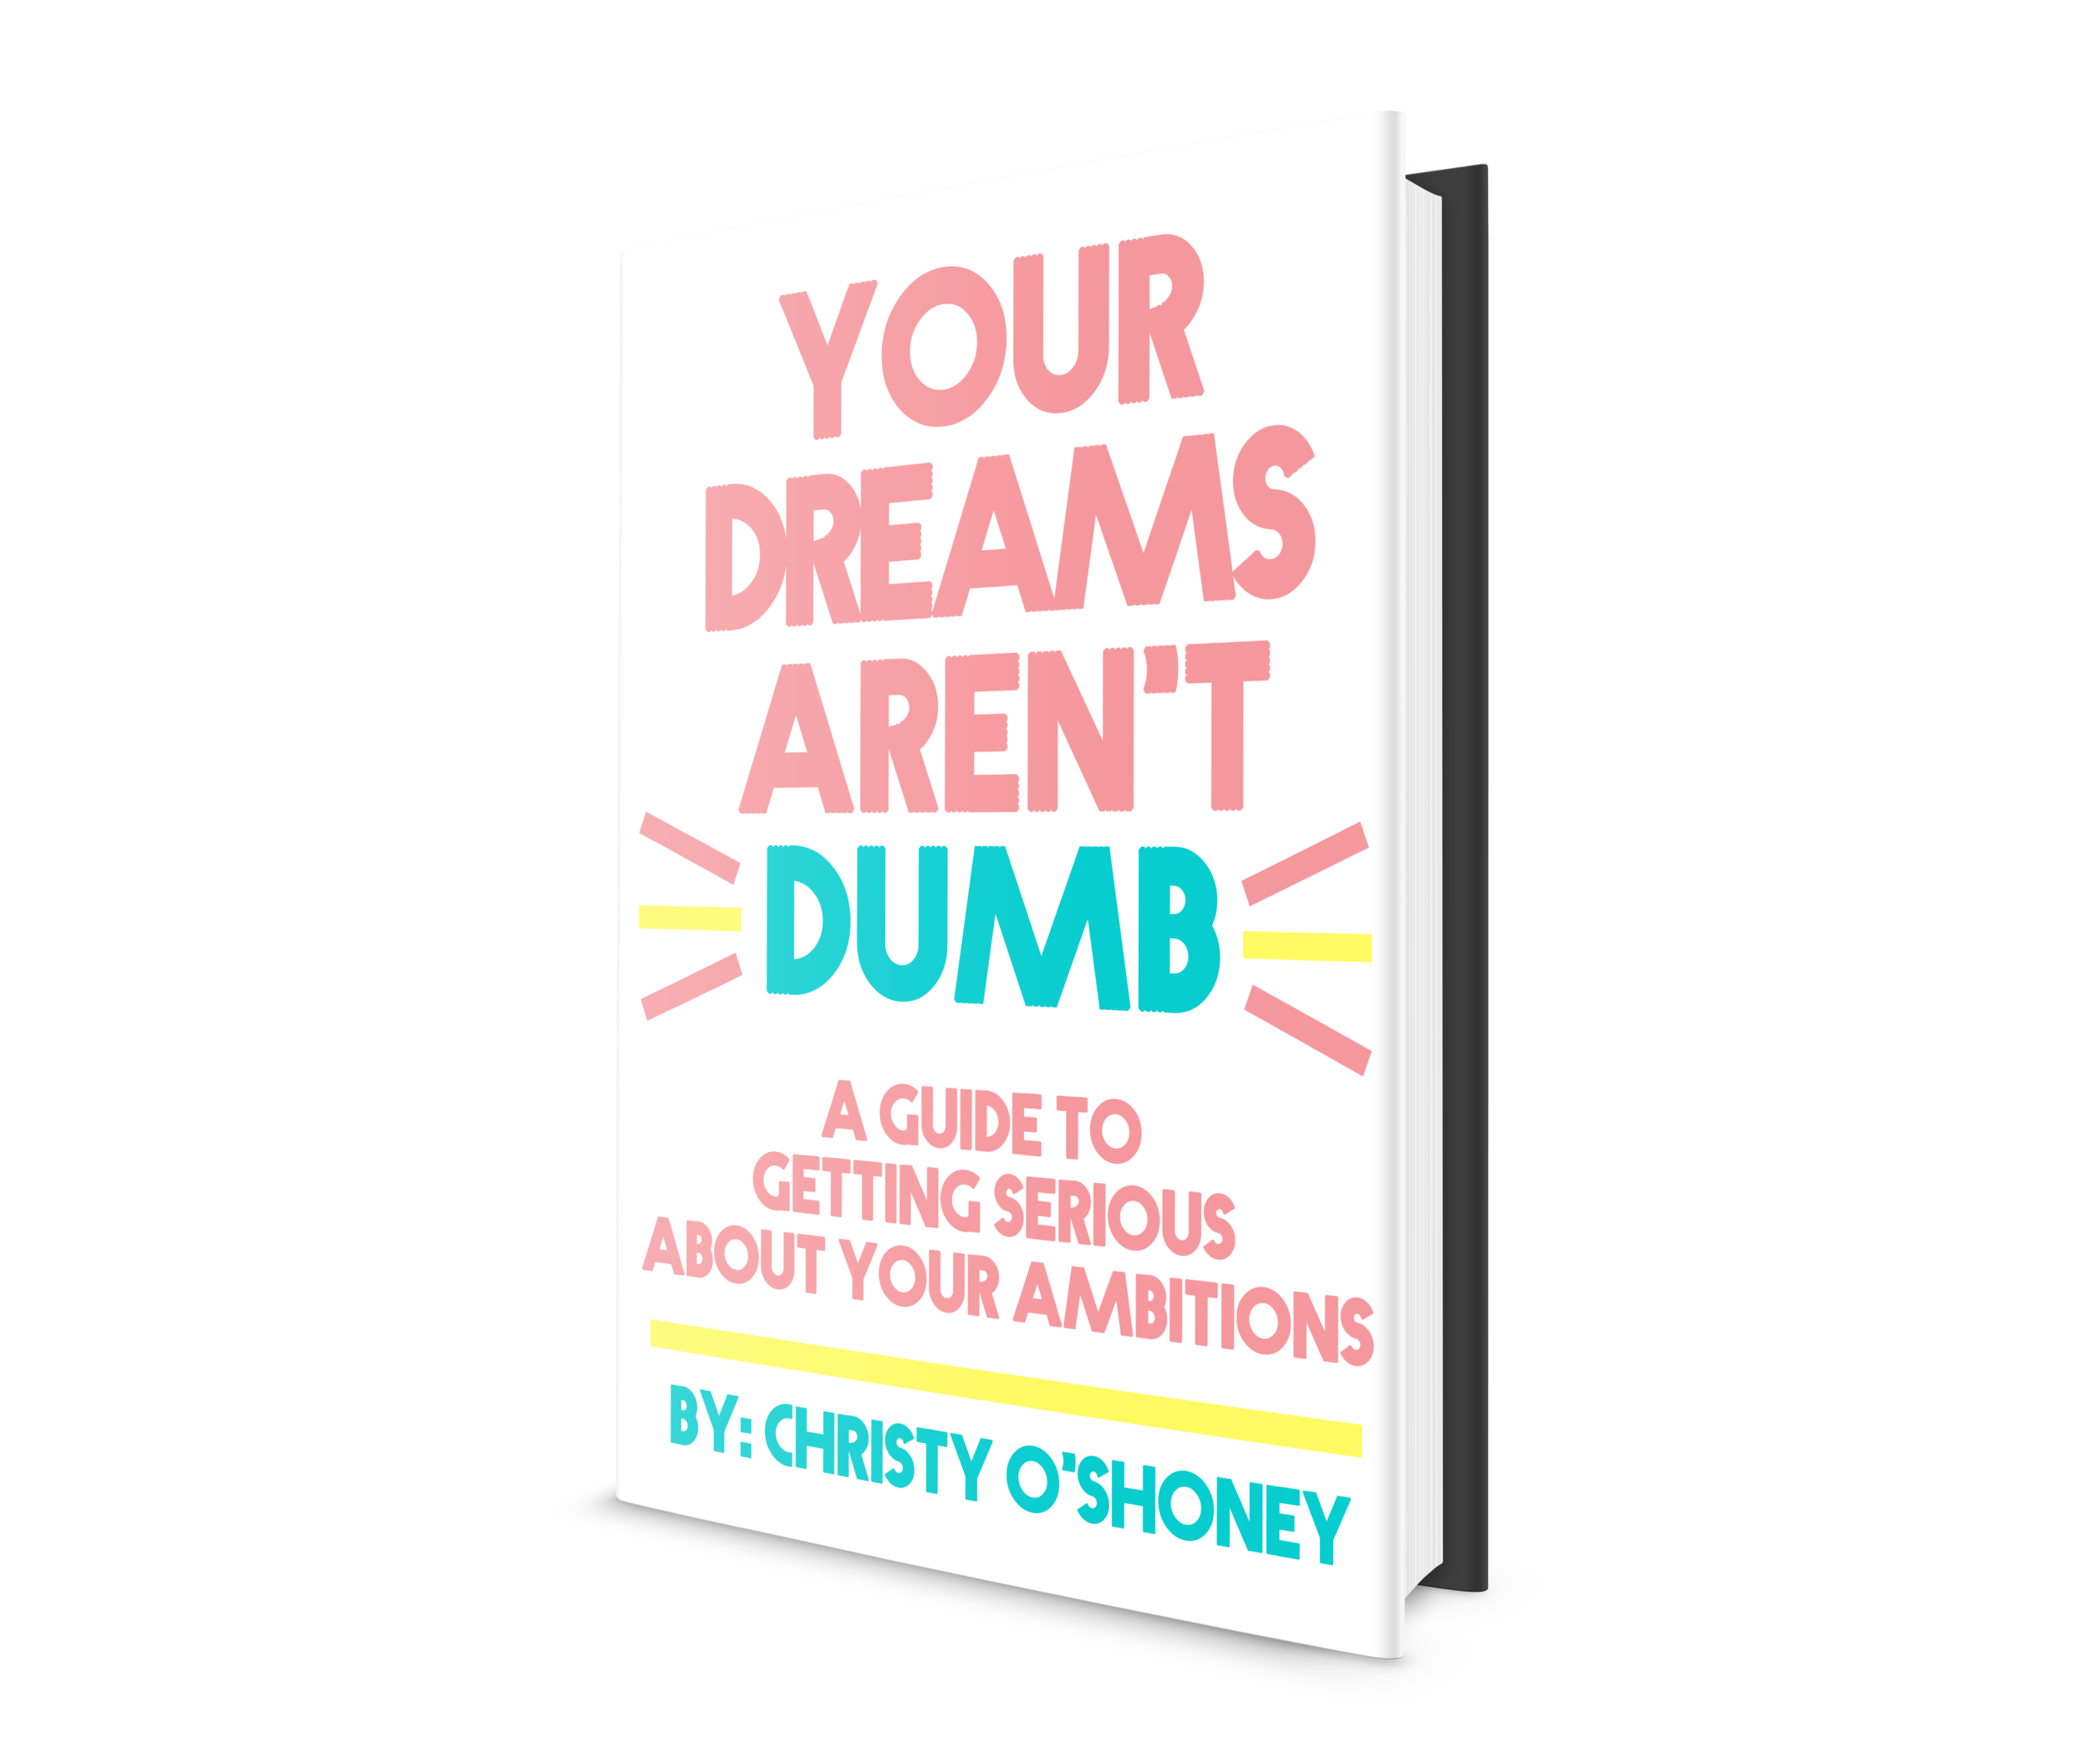 christy-oshoney-your-dreams-arent-dumb-book